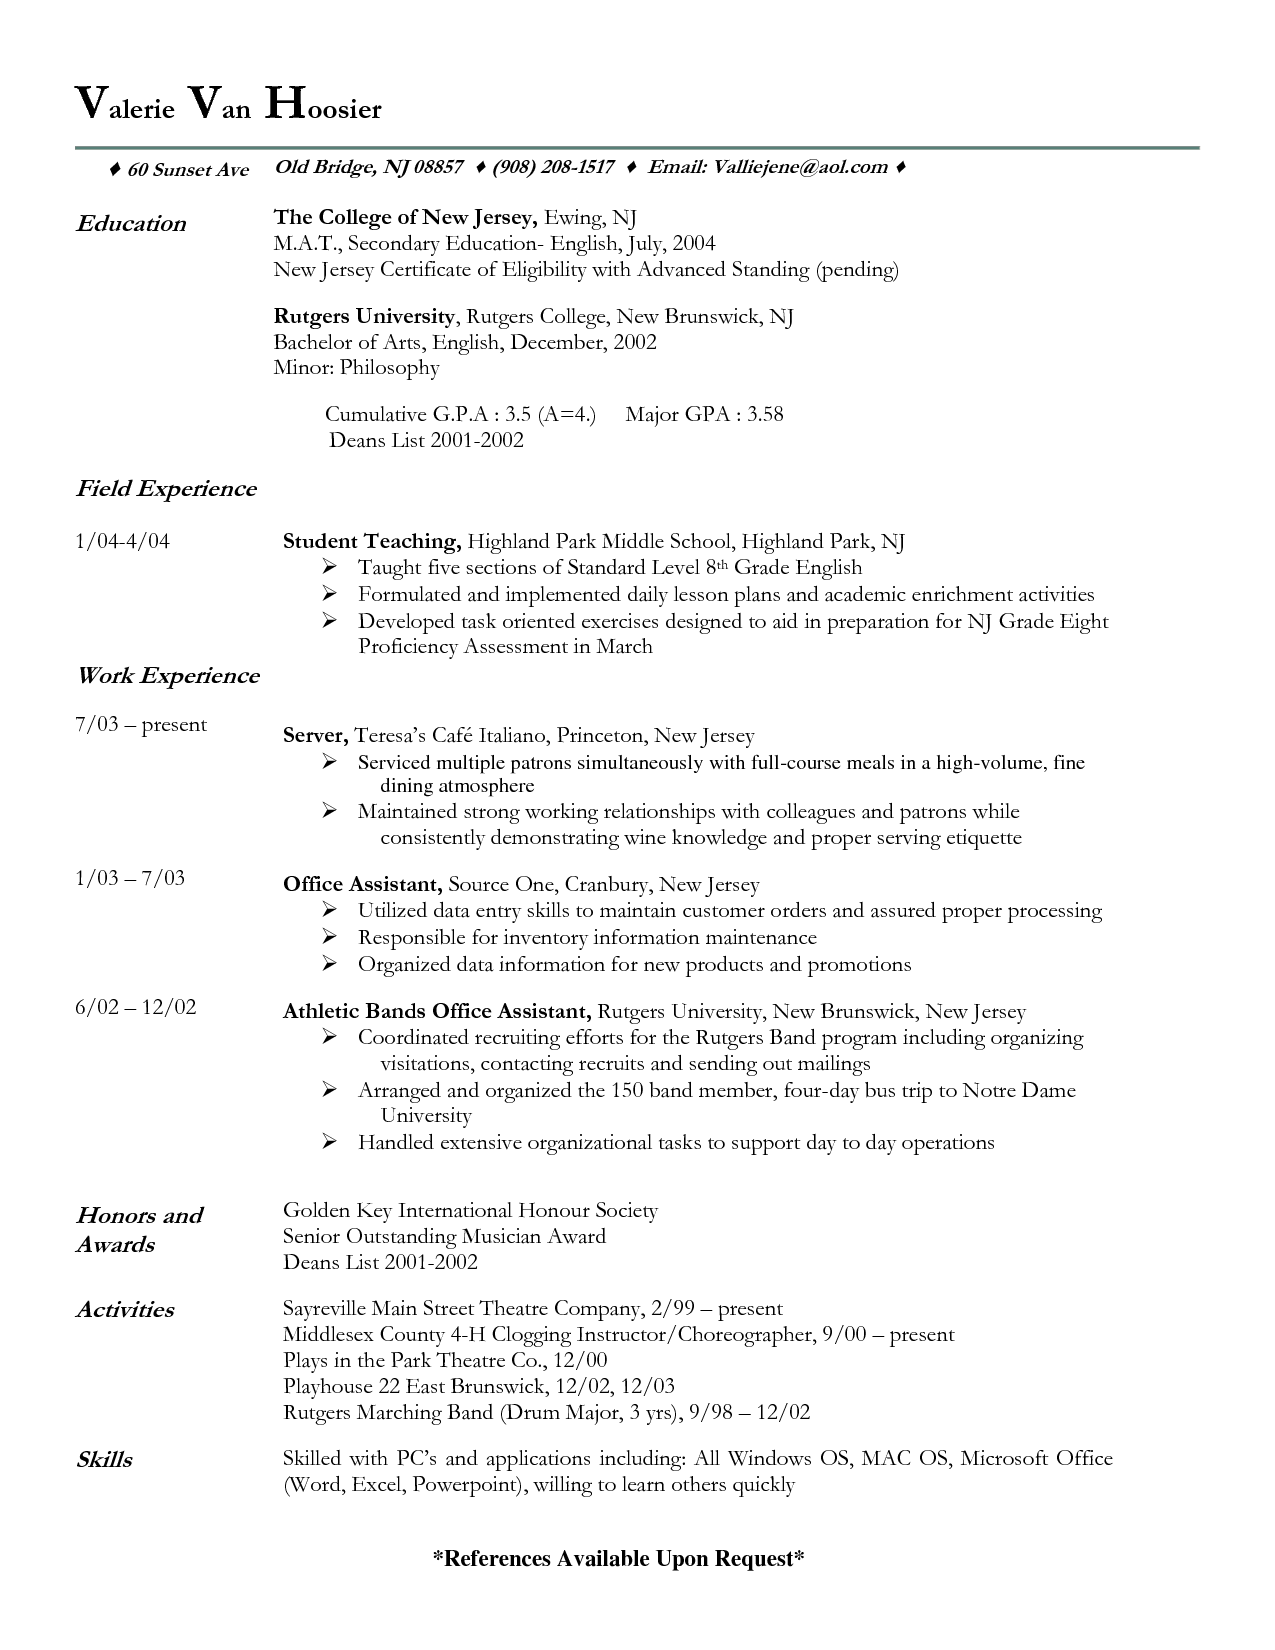 Copy And Paste Resume Templates Example Fine Dining Server Resume Sample  James  Pinterest